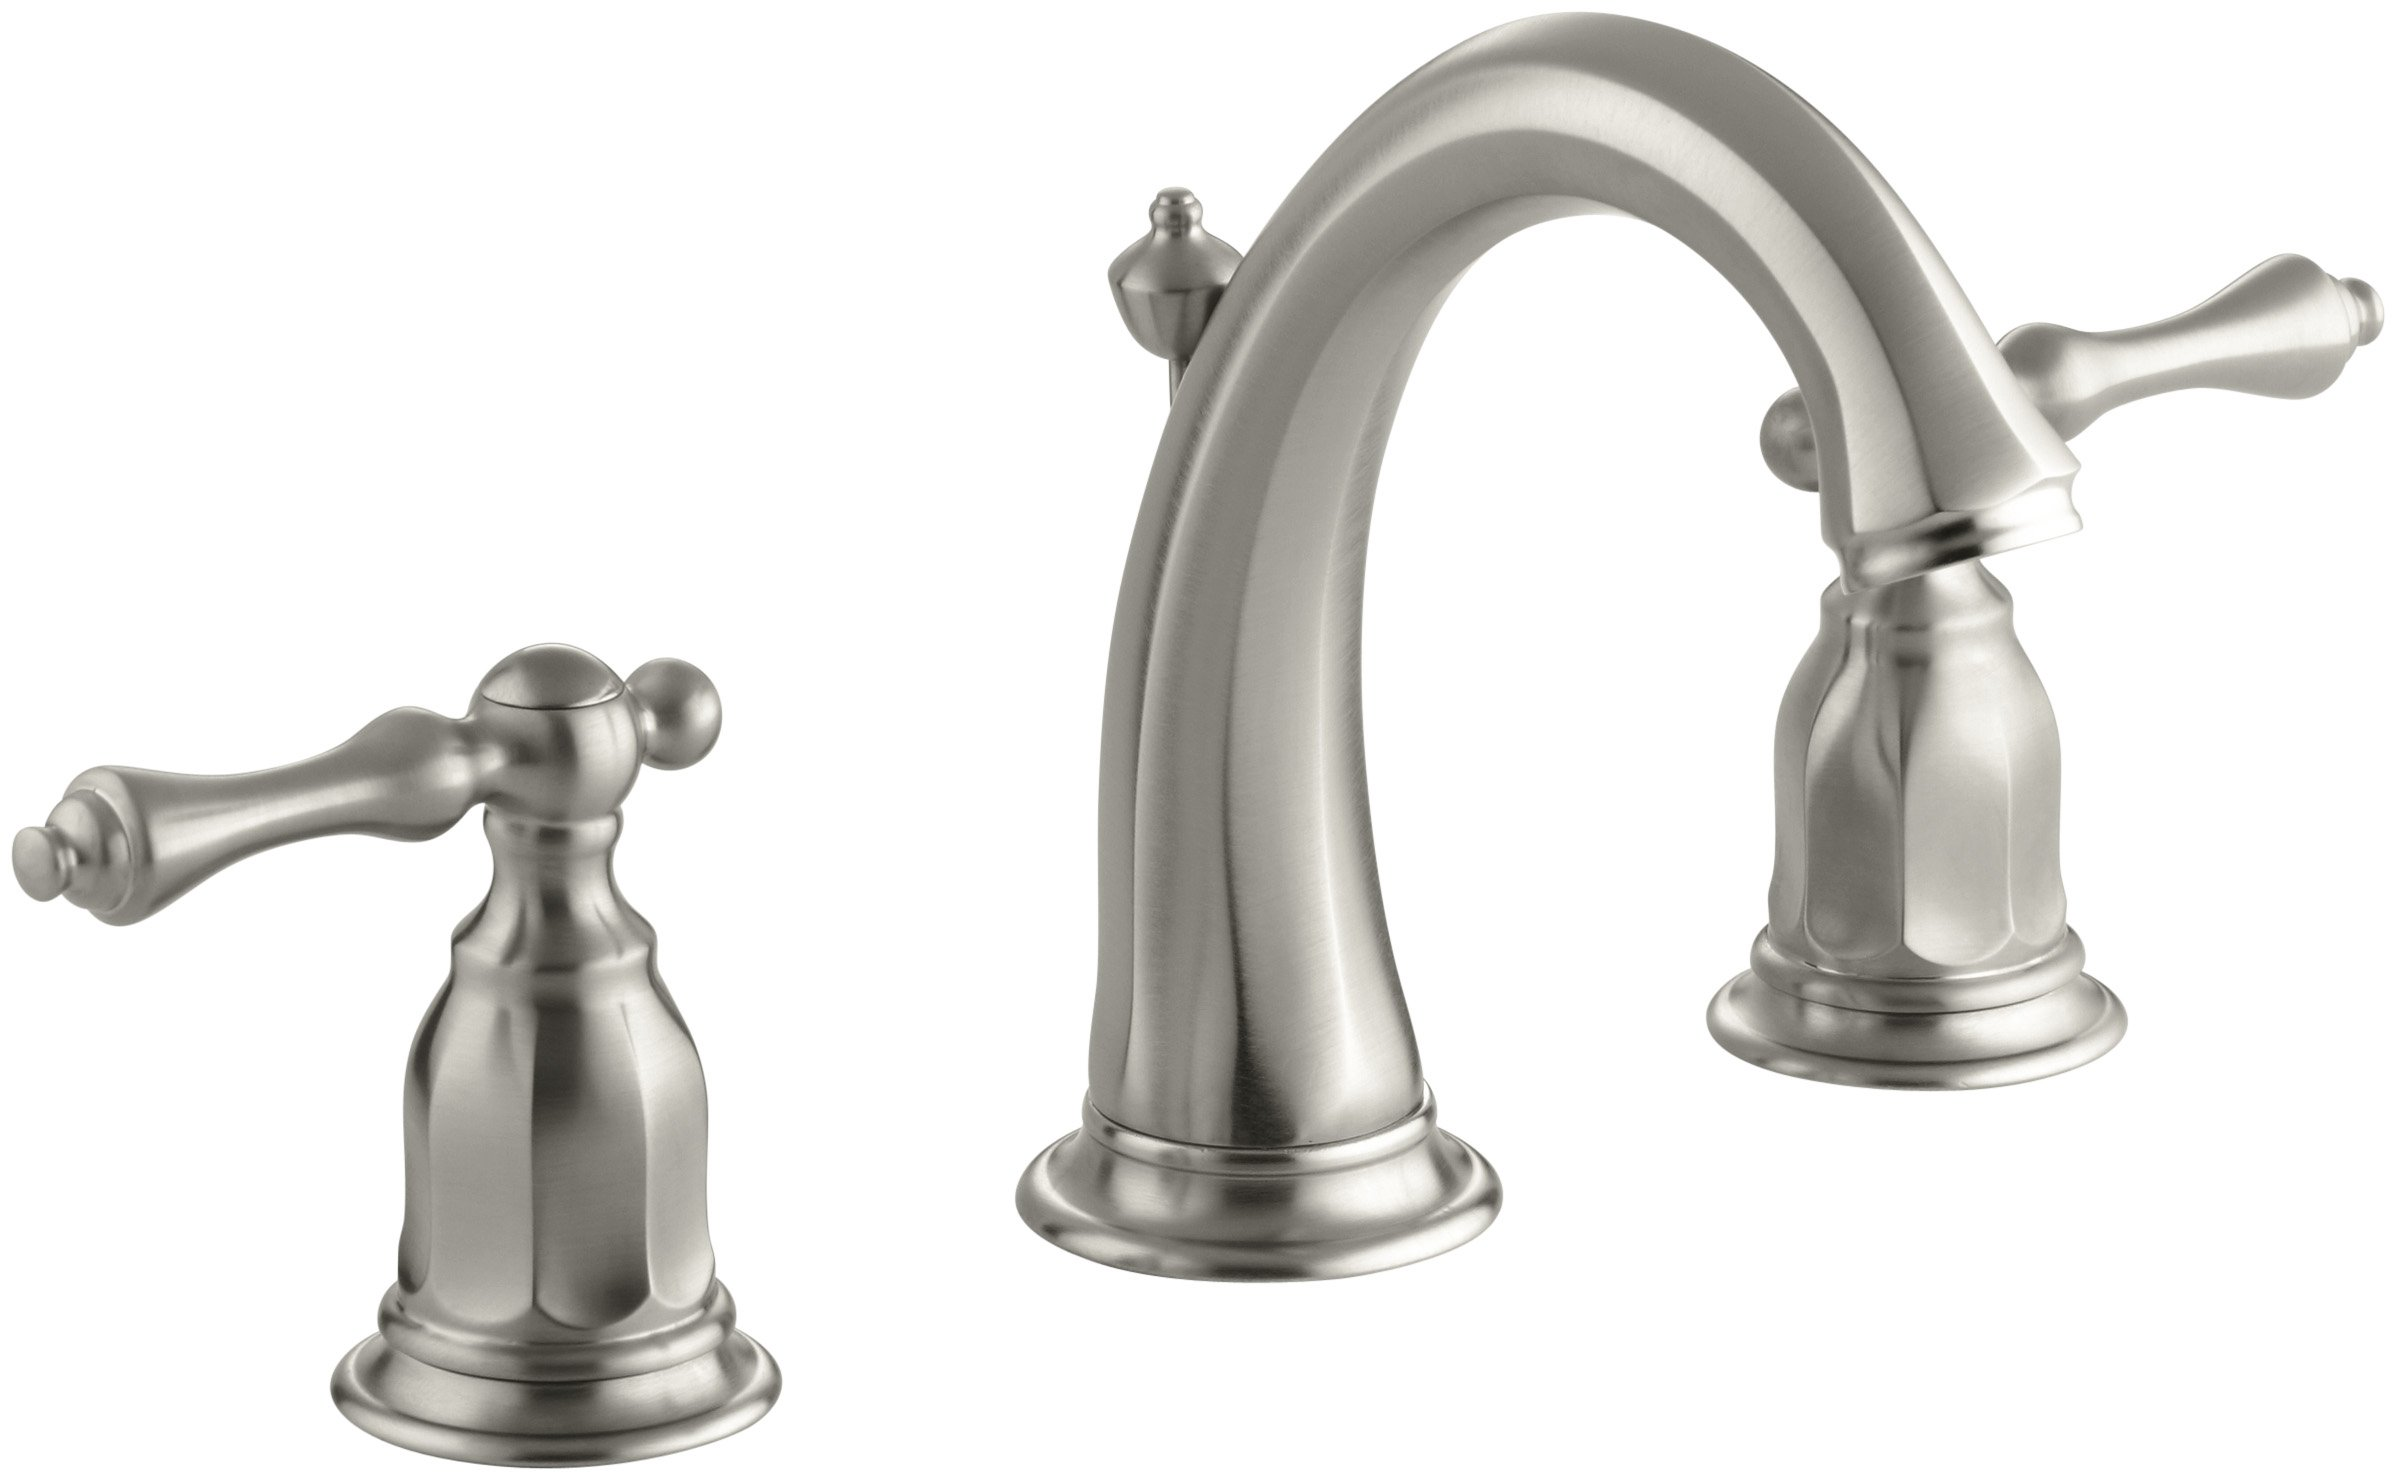 KOHLER K-13491-4-BN Kelston Widespread Bathroom Sink Faucet, Vibrant Brushed Nickel by Kohler